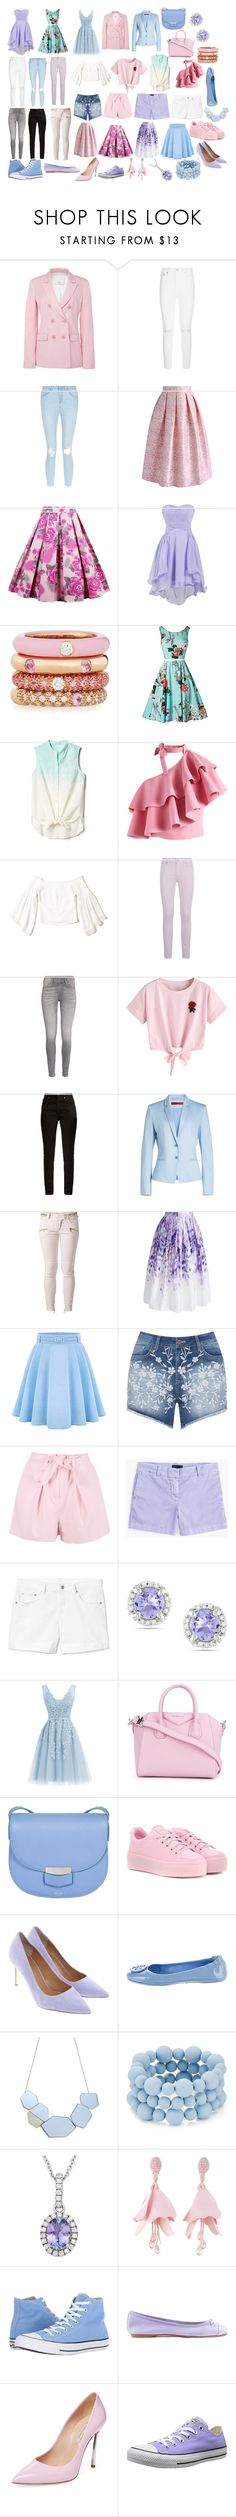 """Esmeralda's Style - The Selection of the Queen"" by gryffindormermaid ❤ liked on Polyvore featuring TIBI, AG Adriano Goldschmied, Chicwish, Adolfo Courrier, Gap, Hollister Co., Paige Denim, WithChic, Yves Saint Laurent and HUGO"